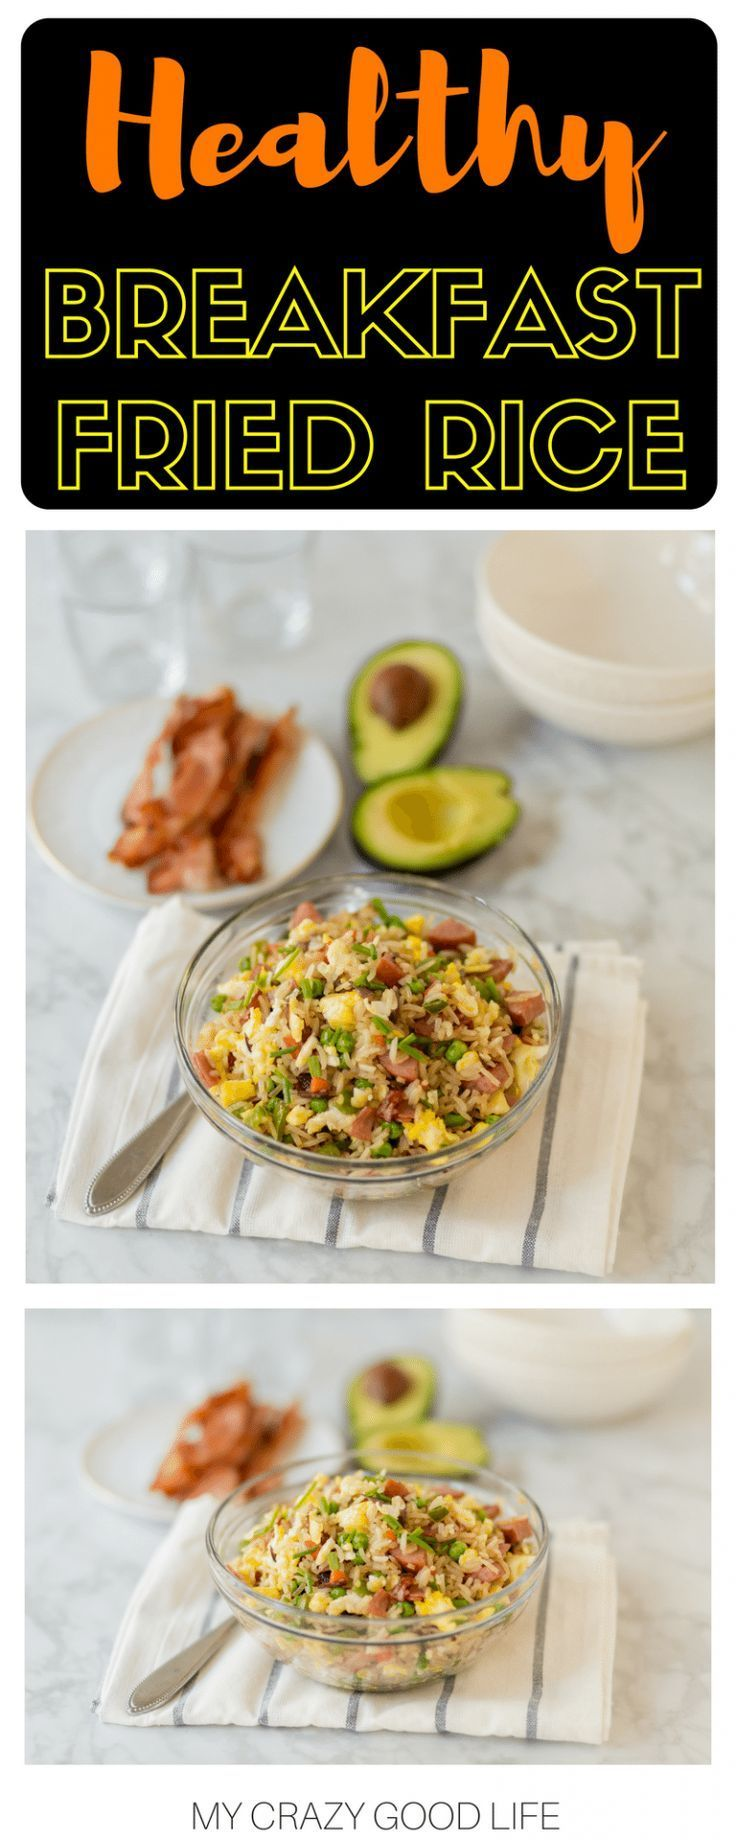 This 21 Day Fix Breakfast Fried Rice recipe is the perfect way to start your day! This bacon fried rice can be a filling breakfast or breakfast side dish! #beachbody #21dayfix #friedrice #breakfast